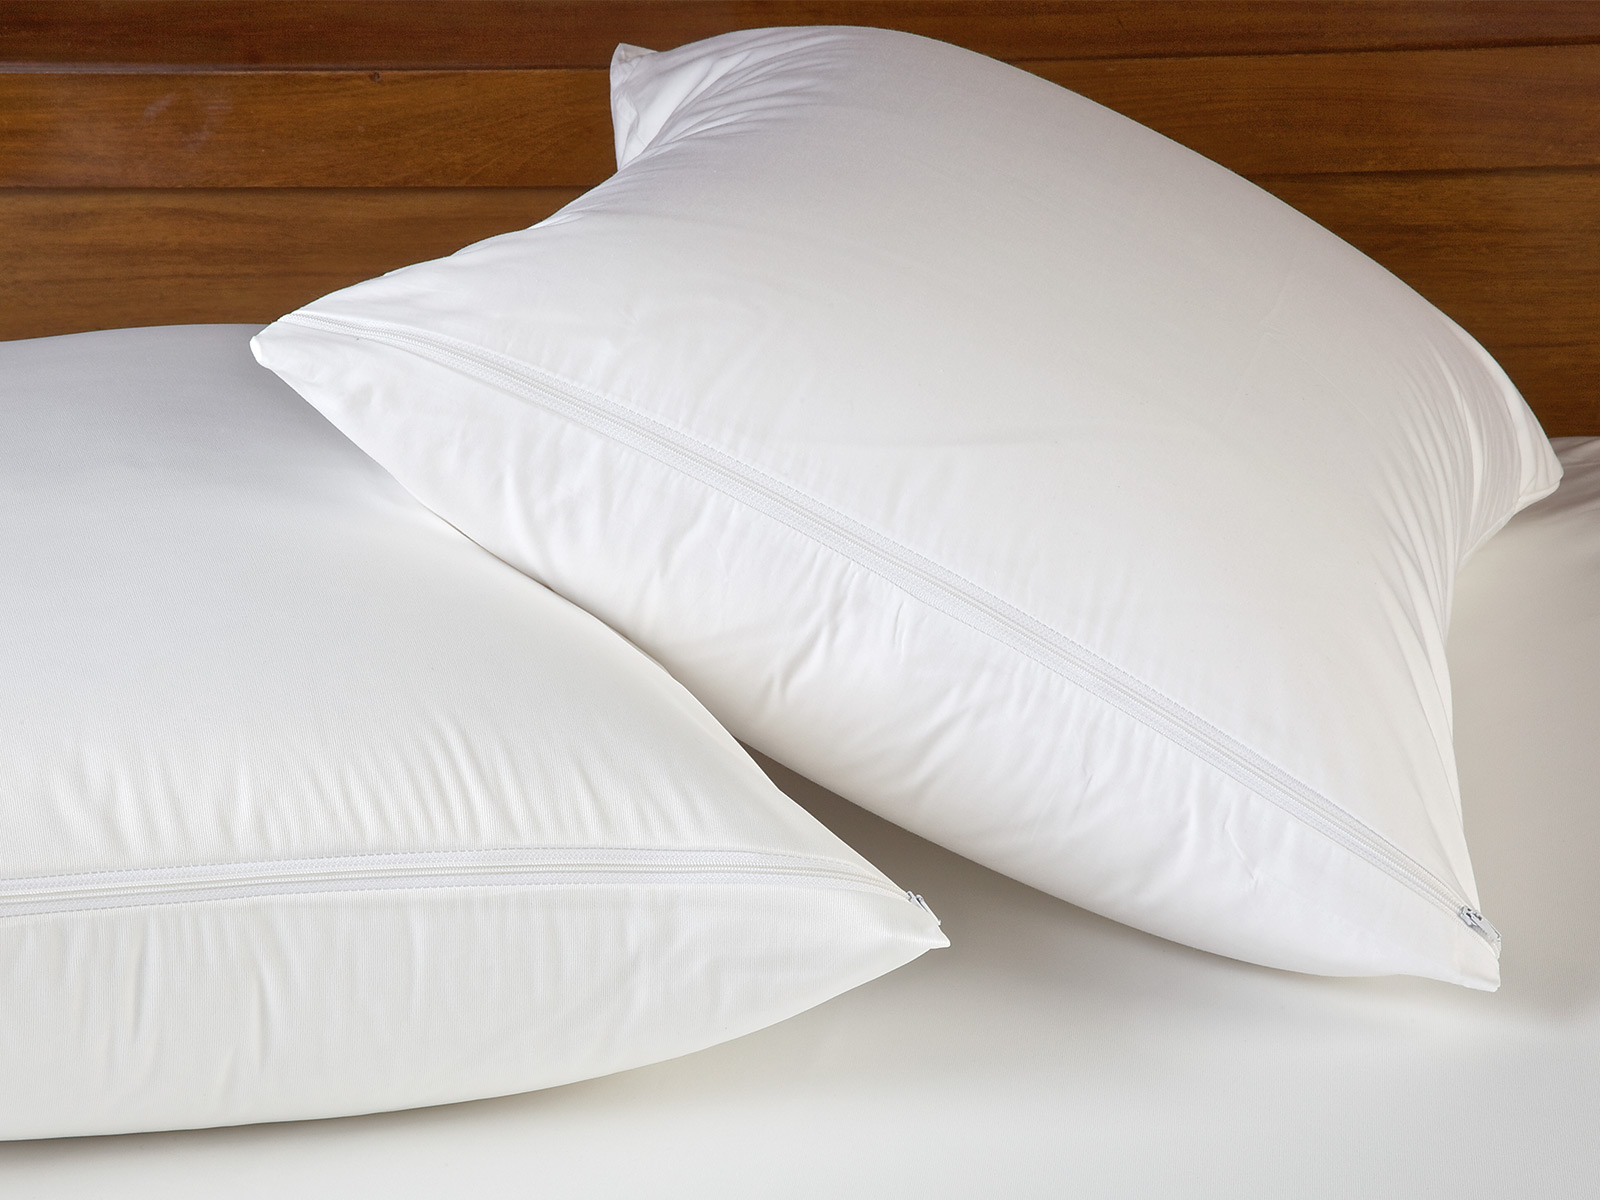 Bed Bug Protection Cover Bed Bug Protectors Luxury Duvet Covers Luxury Bedding Italian Bed Linens Schweitzer Linen